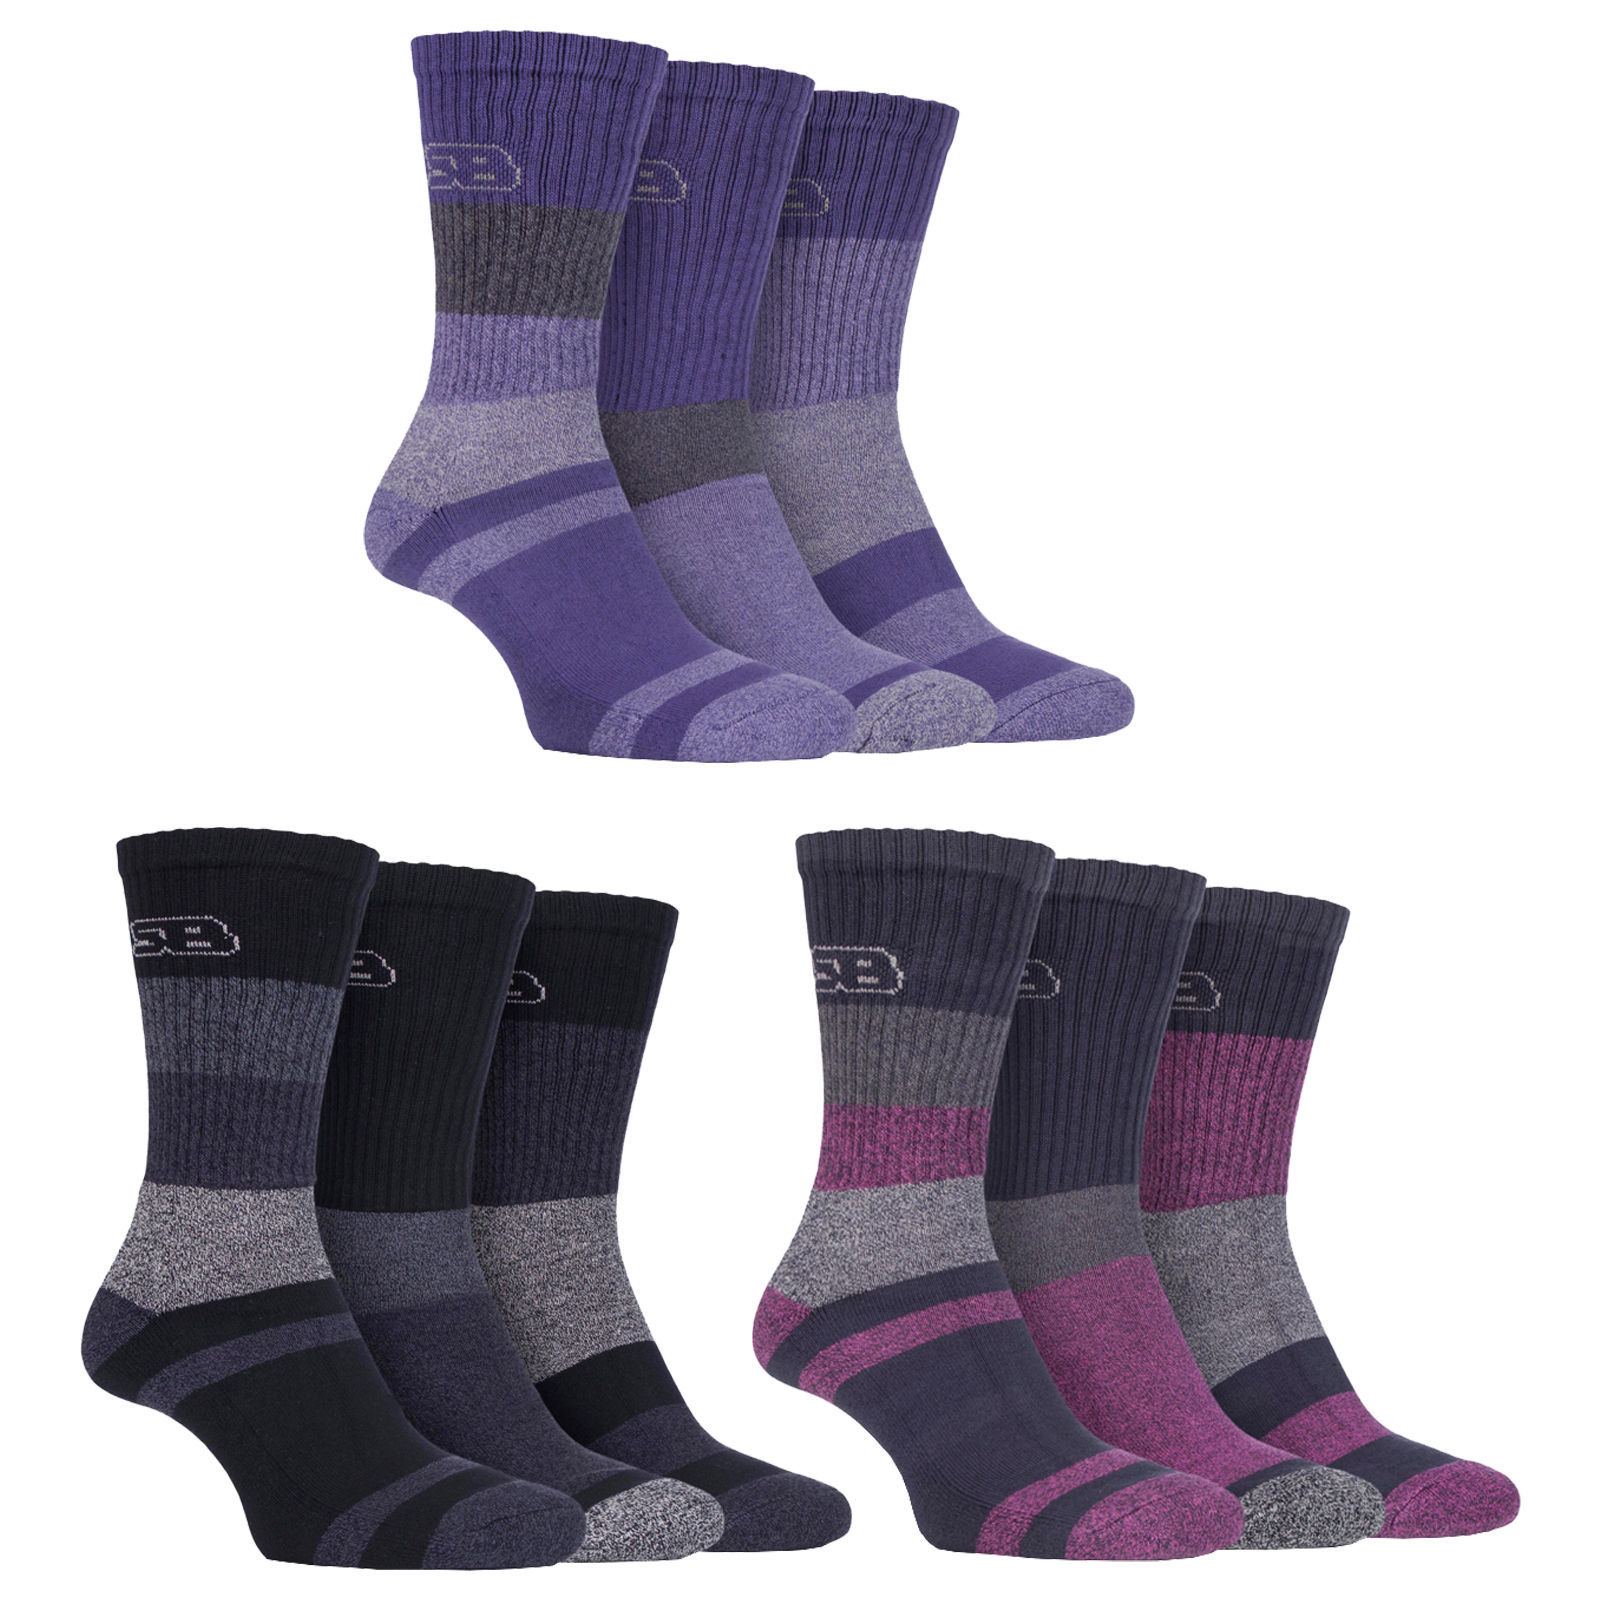 Storm Bloc - 3 Pack Ladies Striped Anti Blister Cotton Lightweight Walking Socks